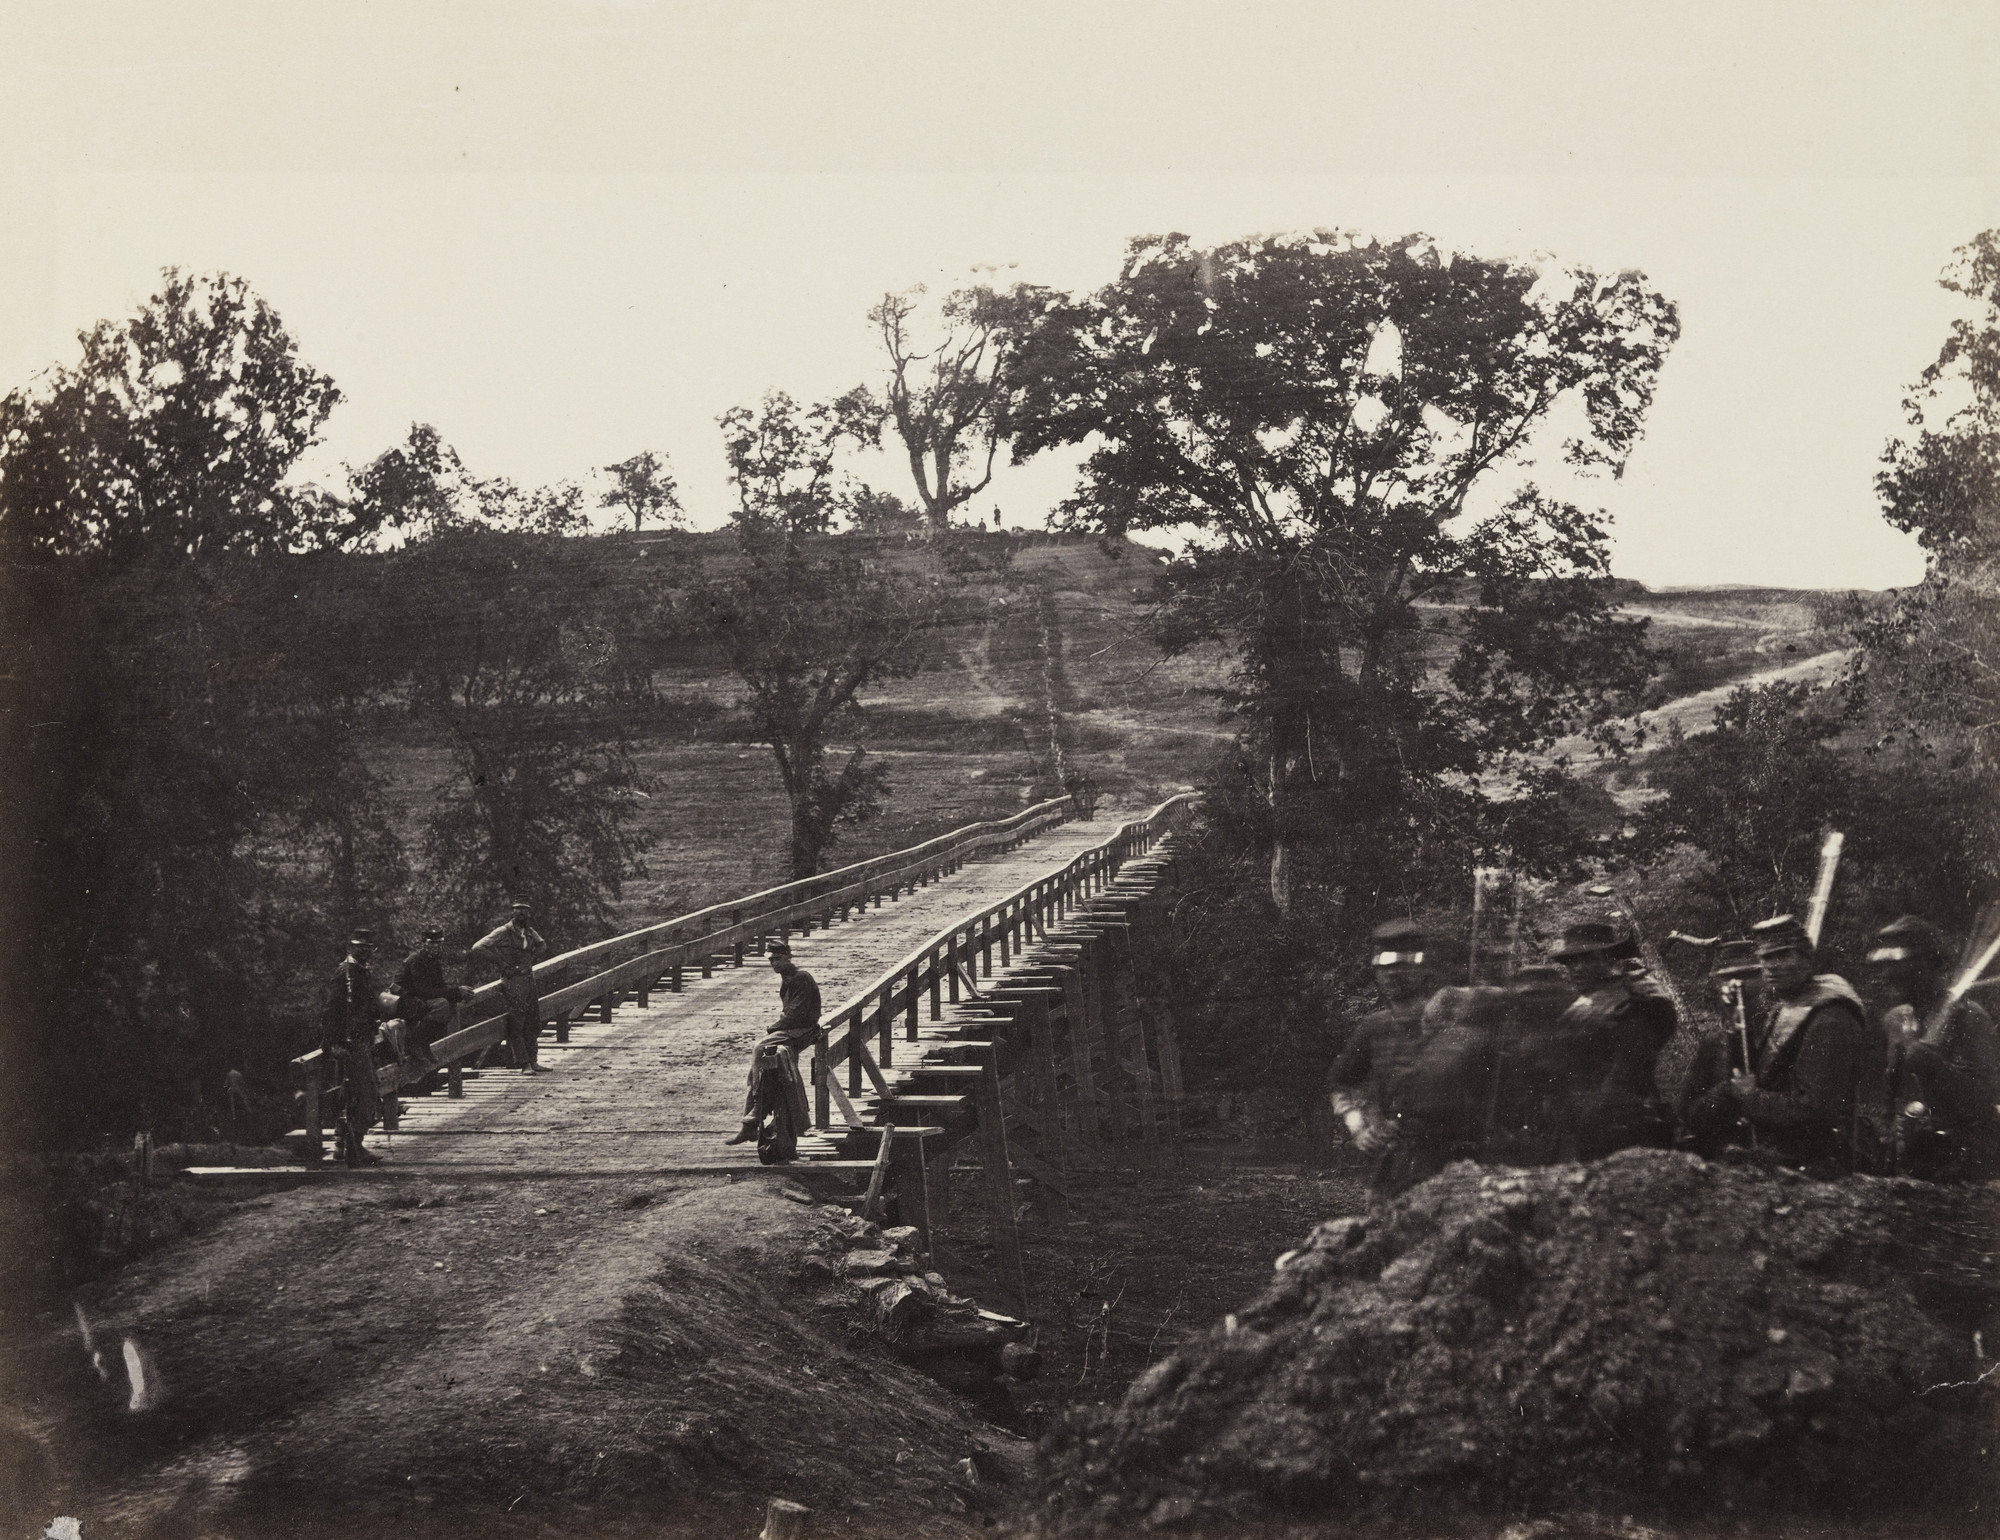 Alexander Gardner, Timothy O'Sullivan. Chesterfield Bridge, North Anna, Virginia. May, 1864